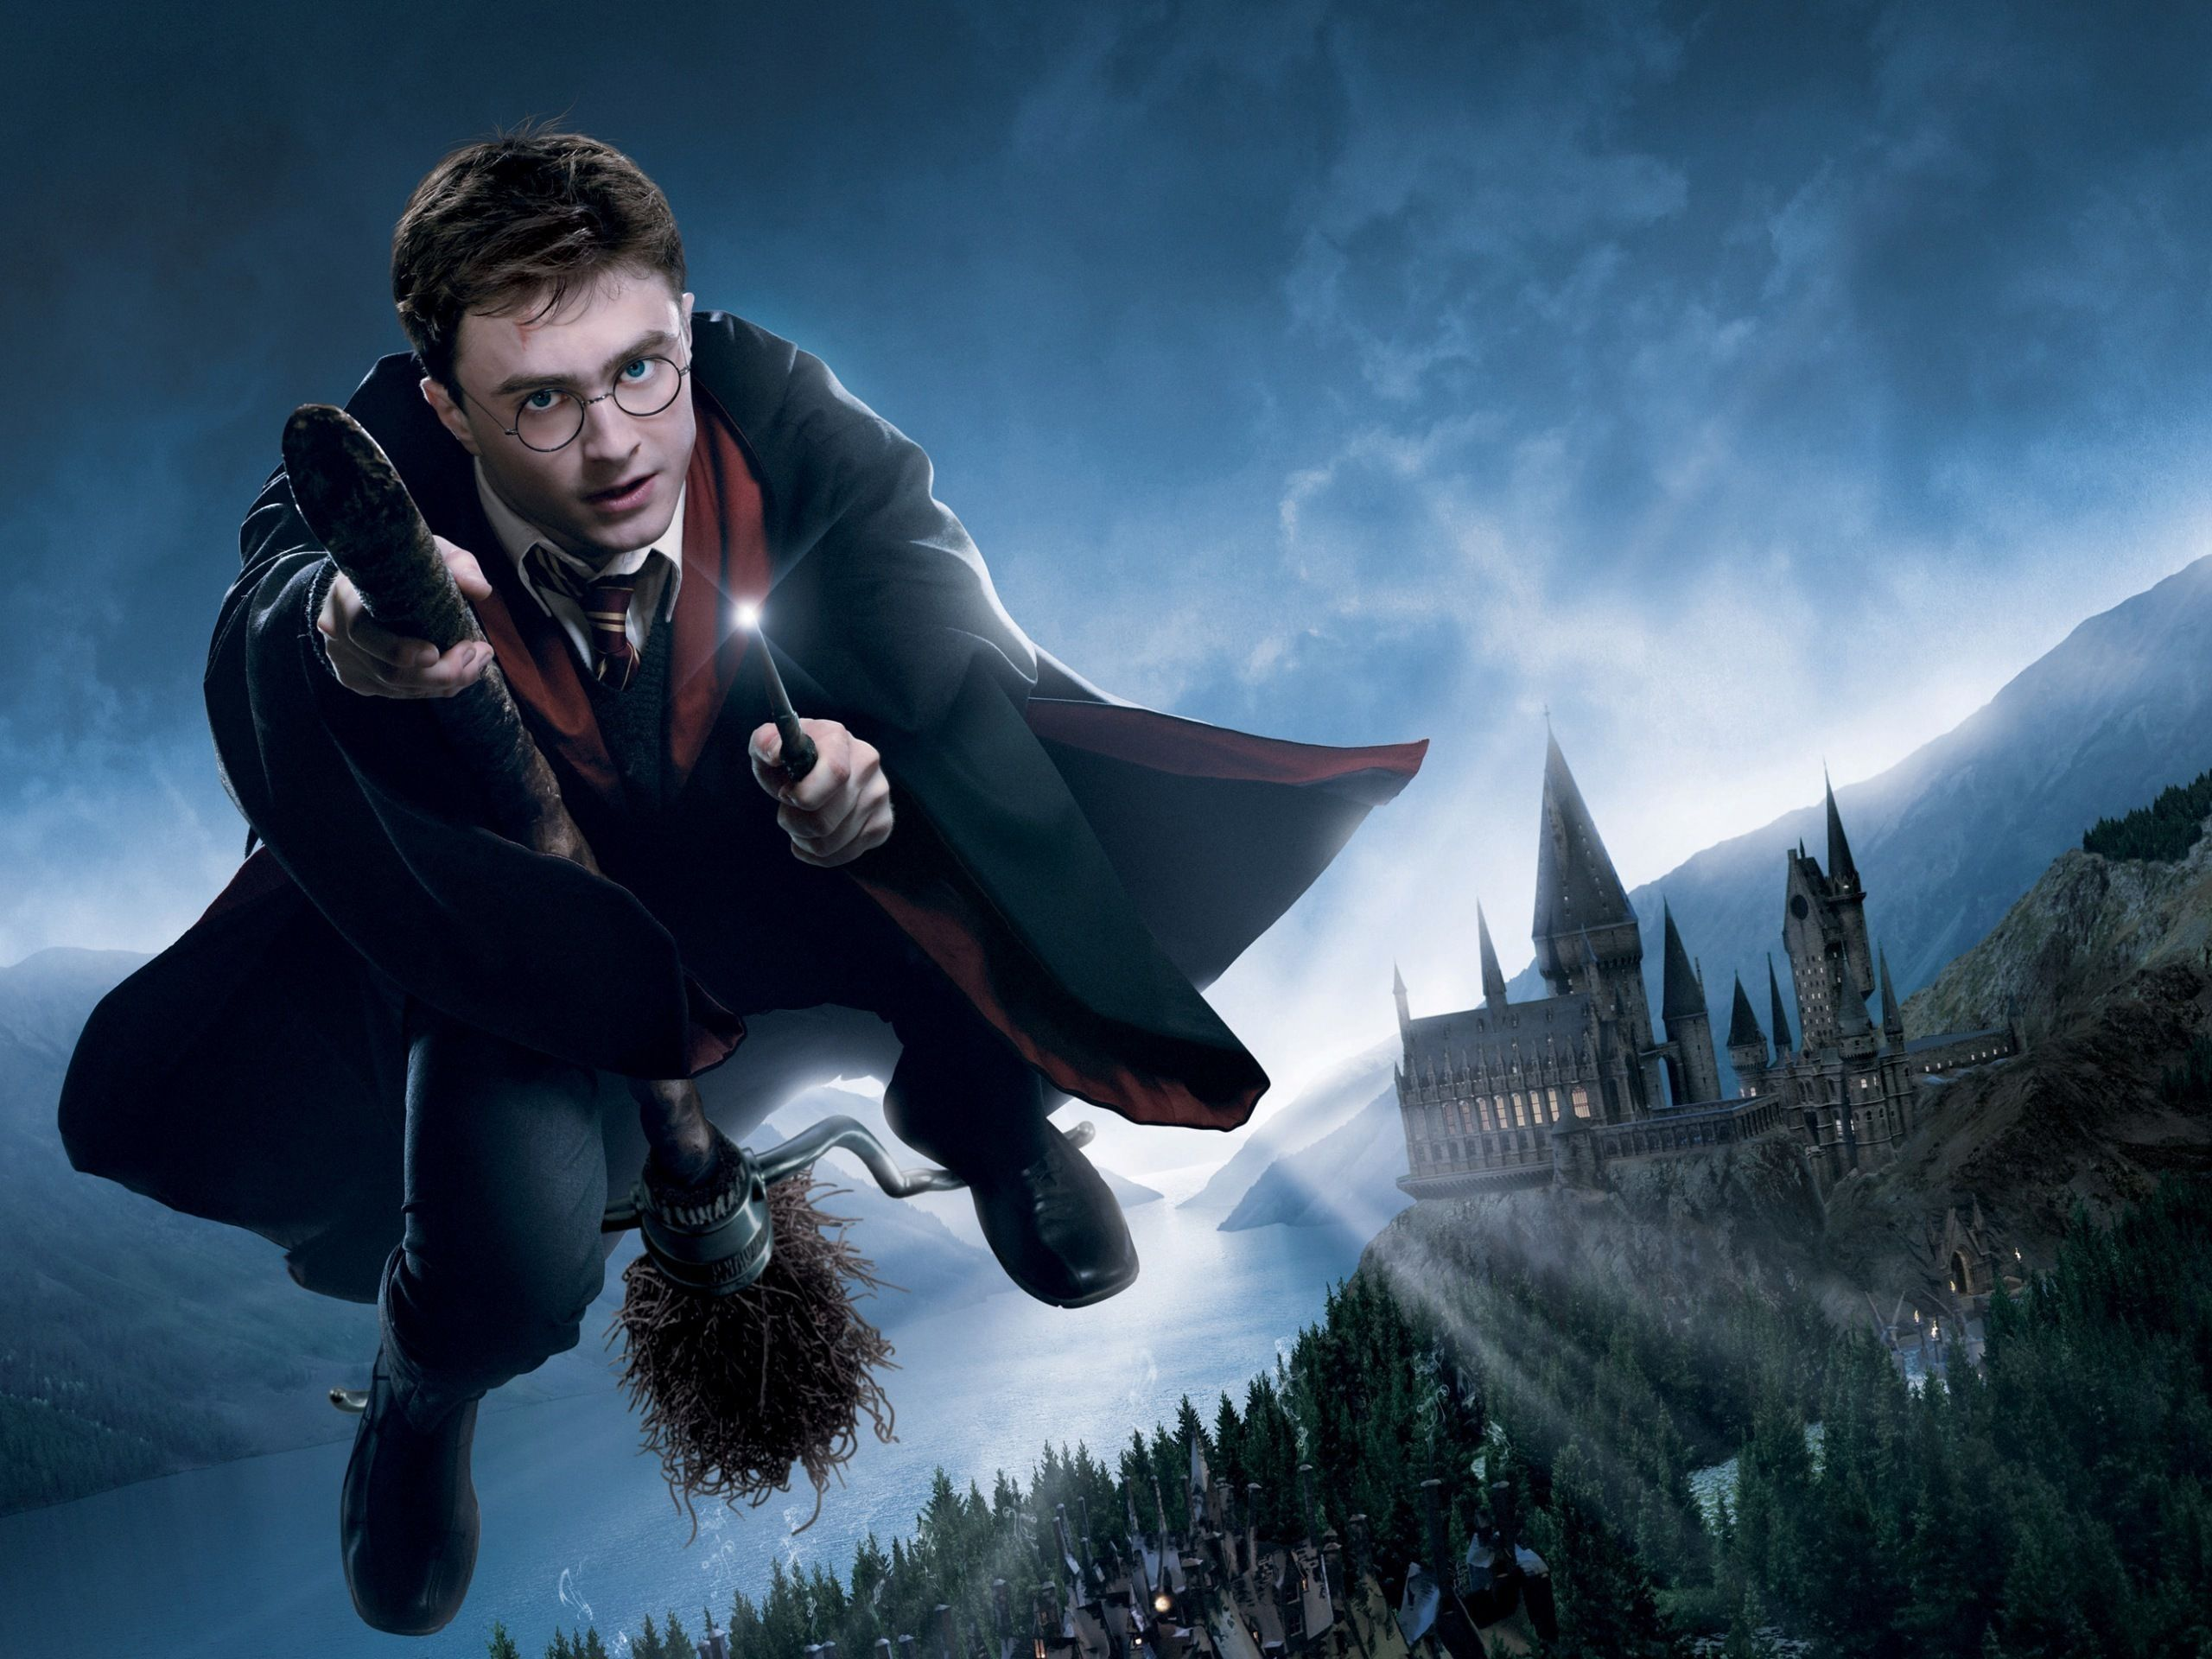 Arry potter wallpapers hd images of harry potter ultra hd hd arry potter wallpapers hd images of harry potter ultra hd voltagebd Image collections